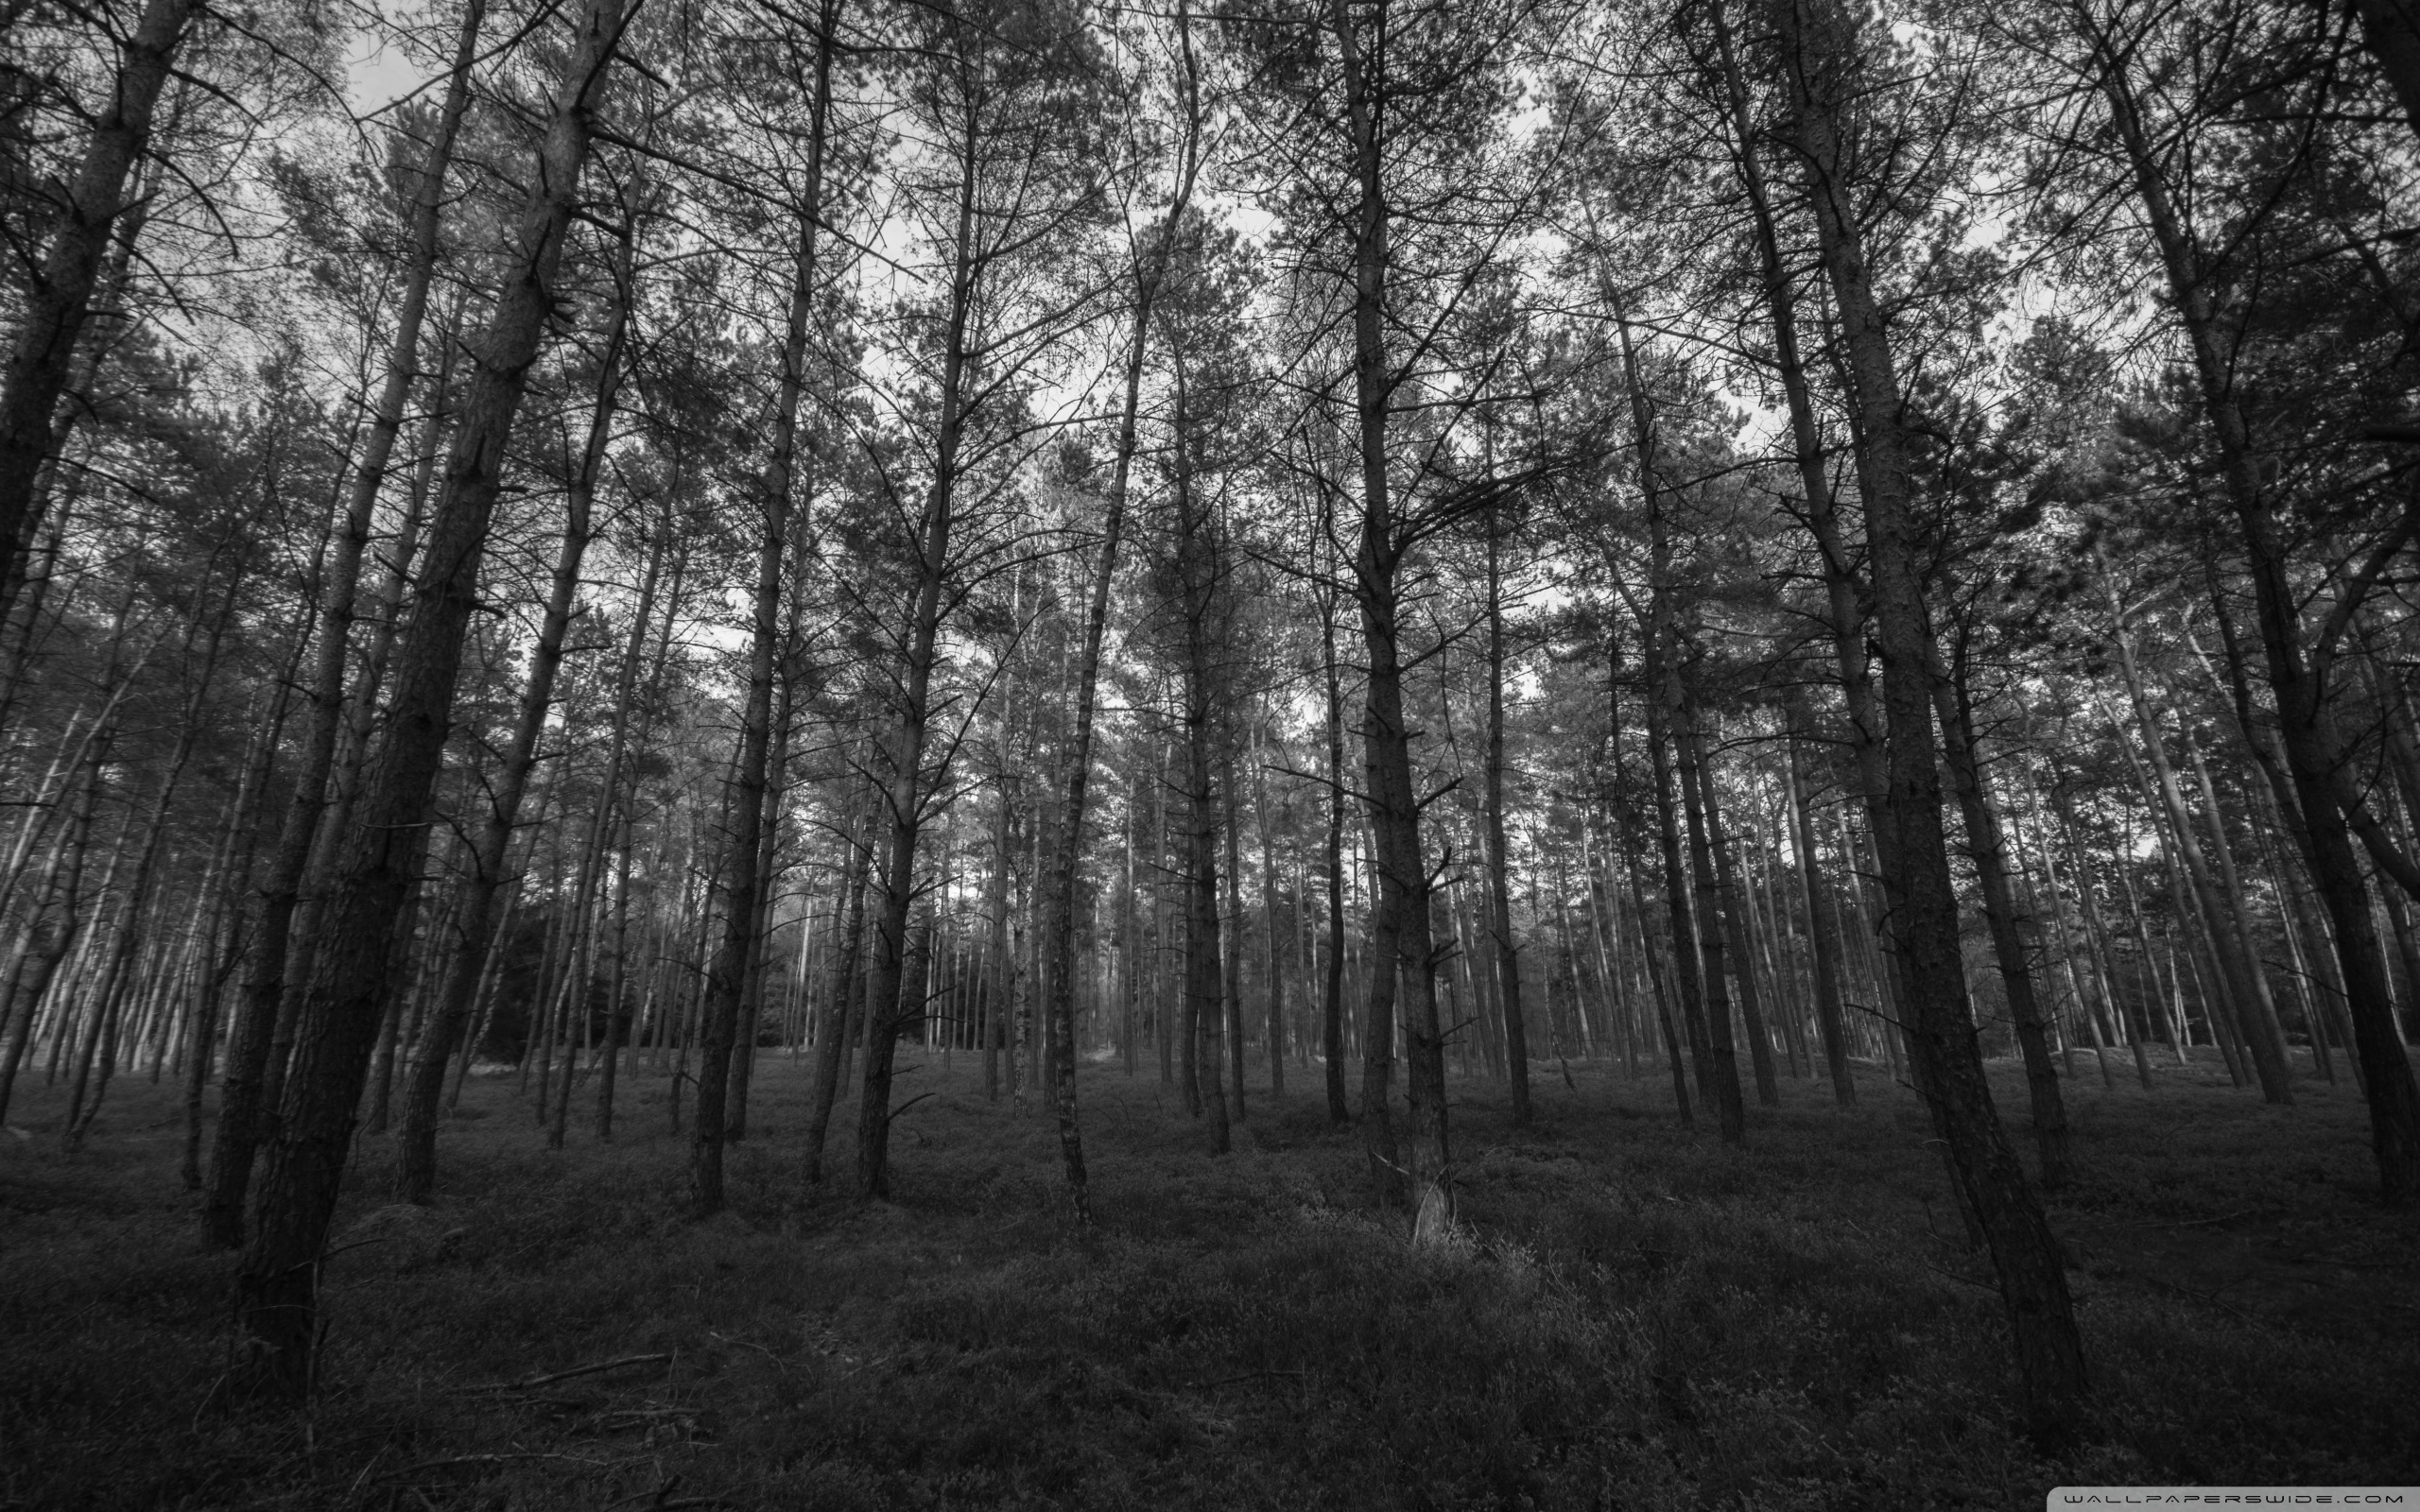 10 New Black And White Forest Wallpaper FULL HD 1920×1080 For PC Background